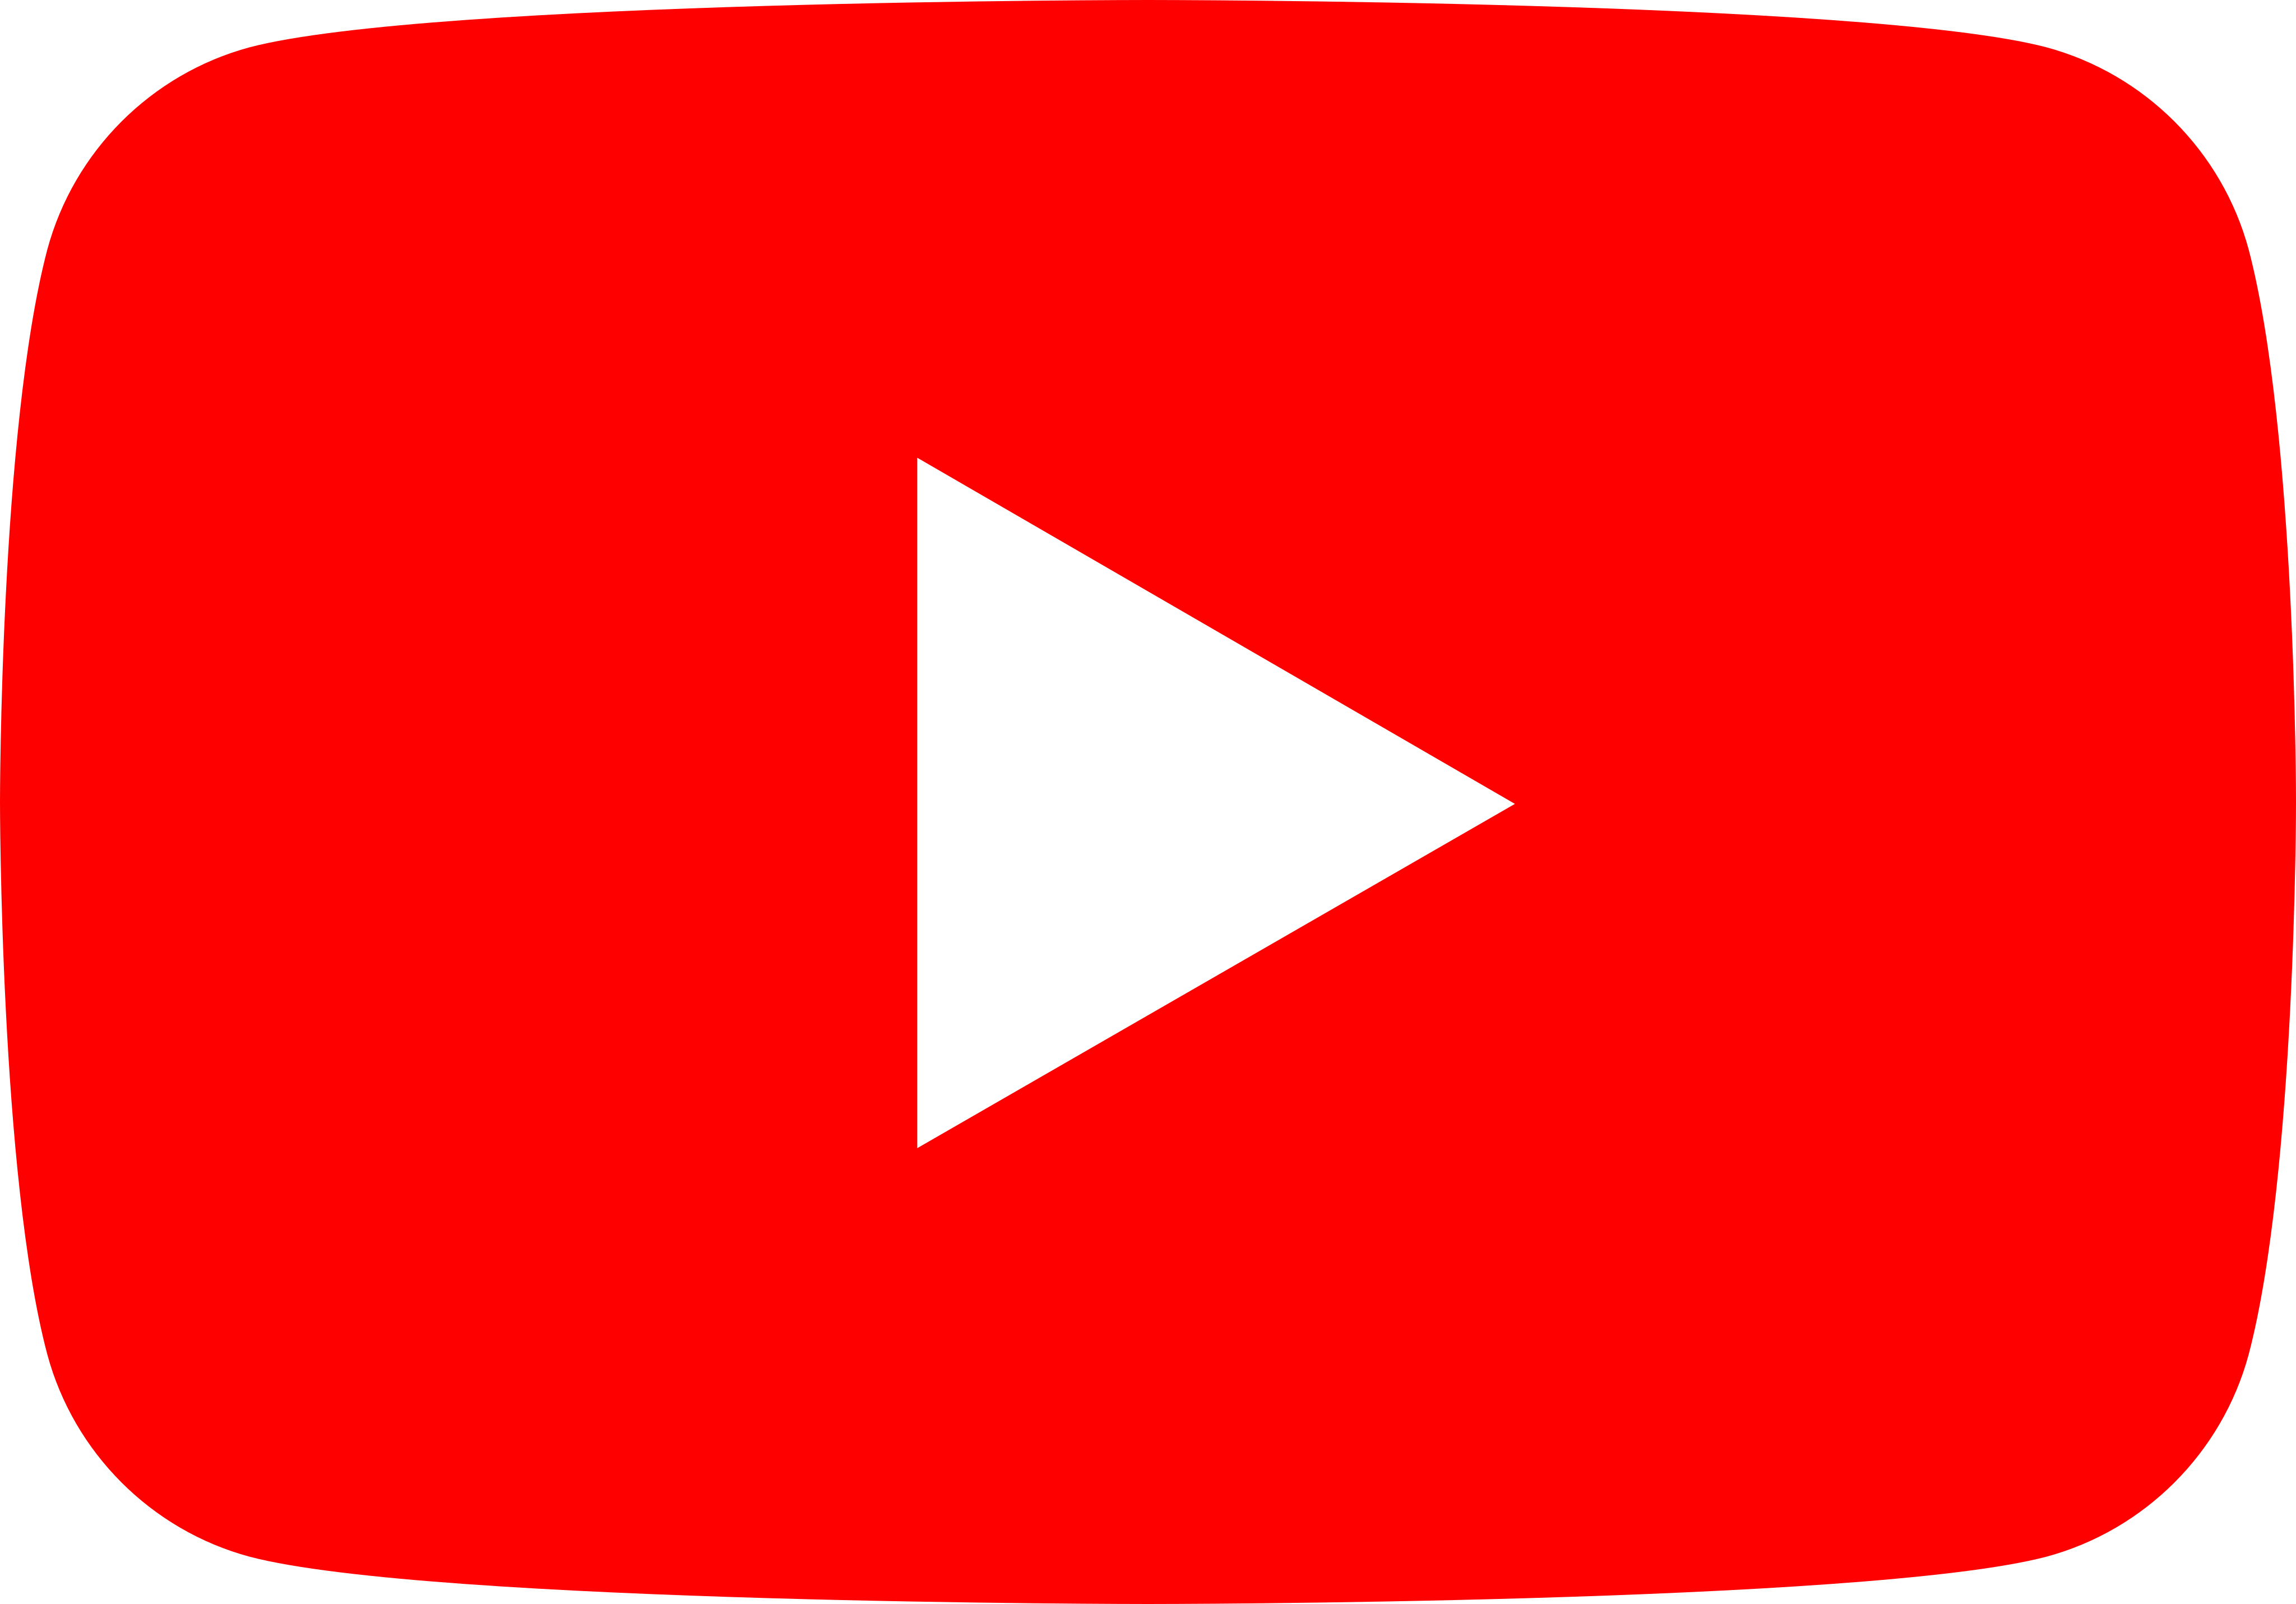 youtube logo 5 2 - YouTube Logo